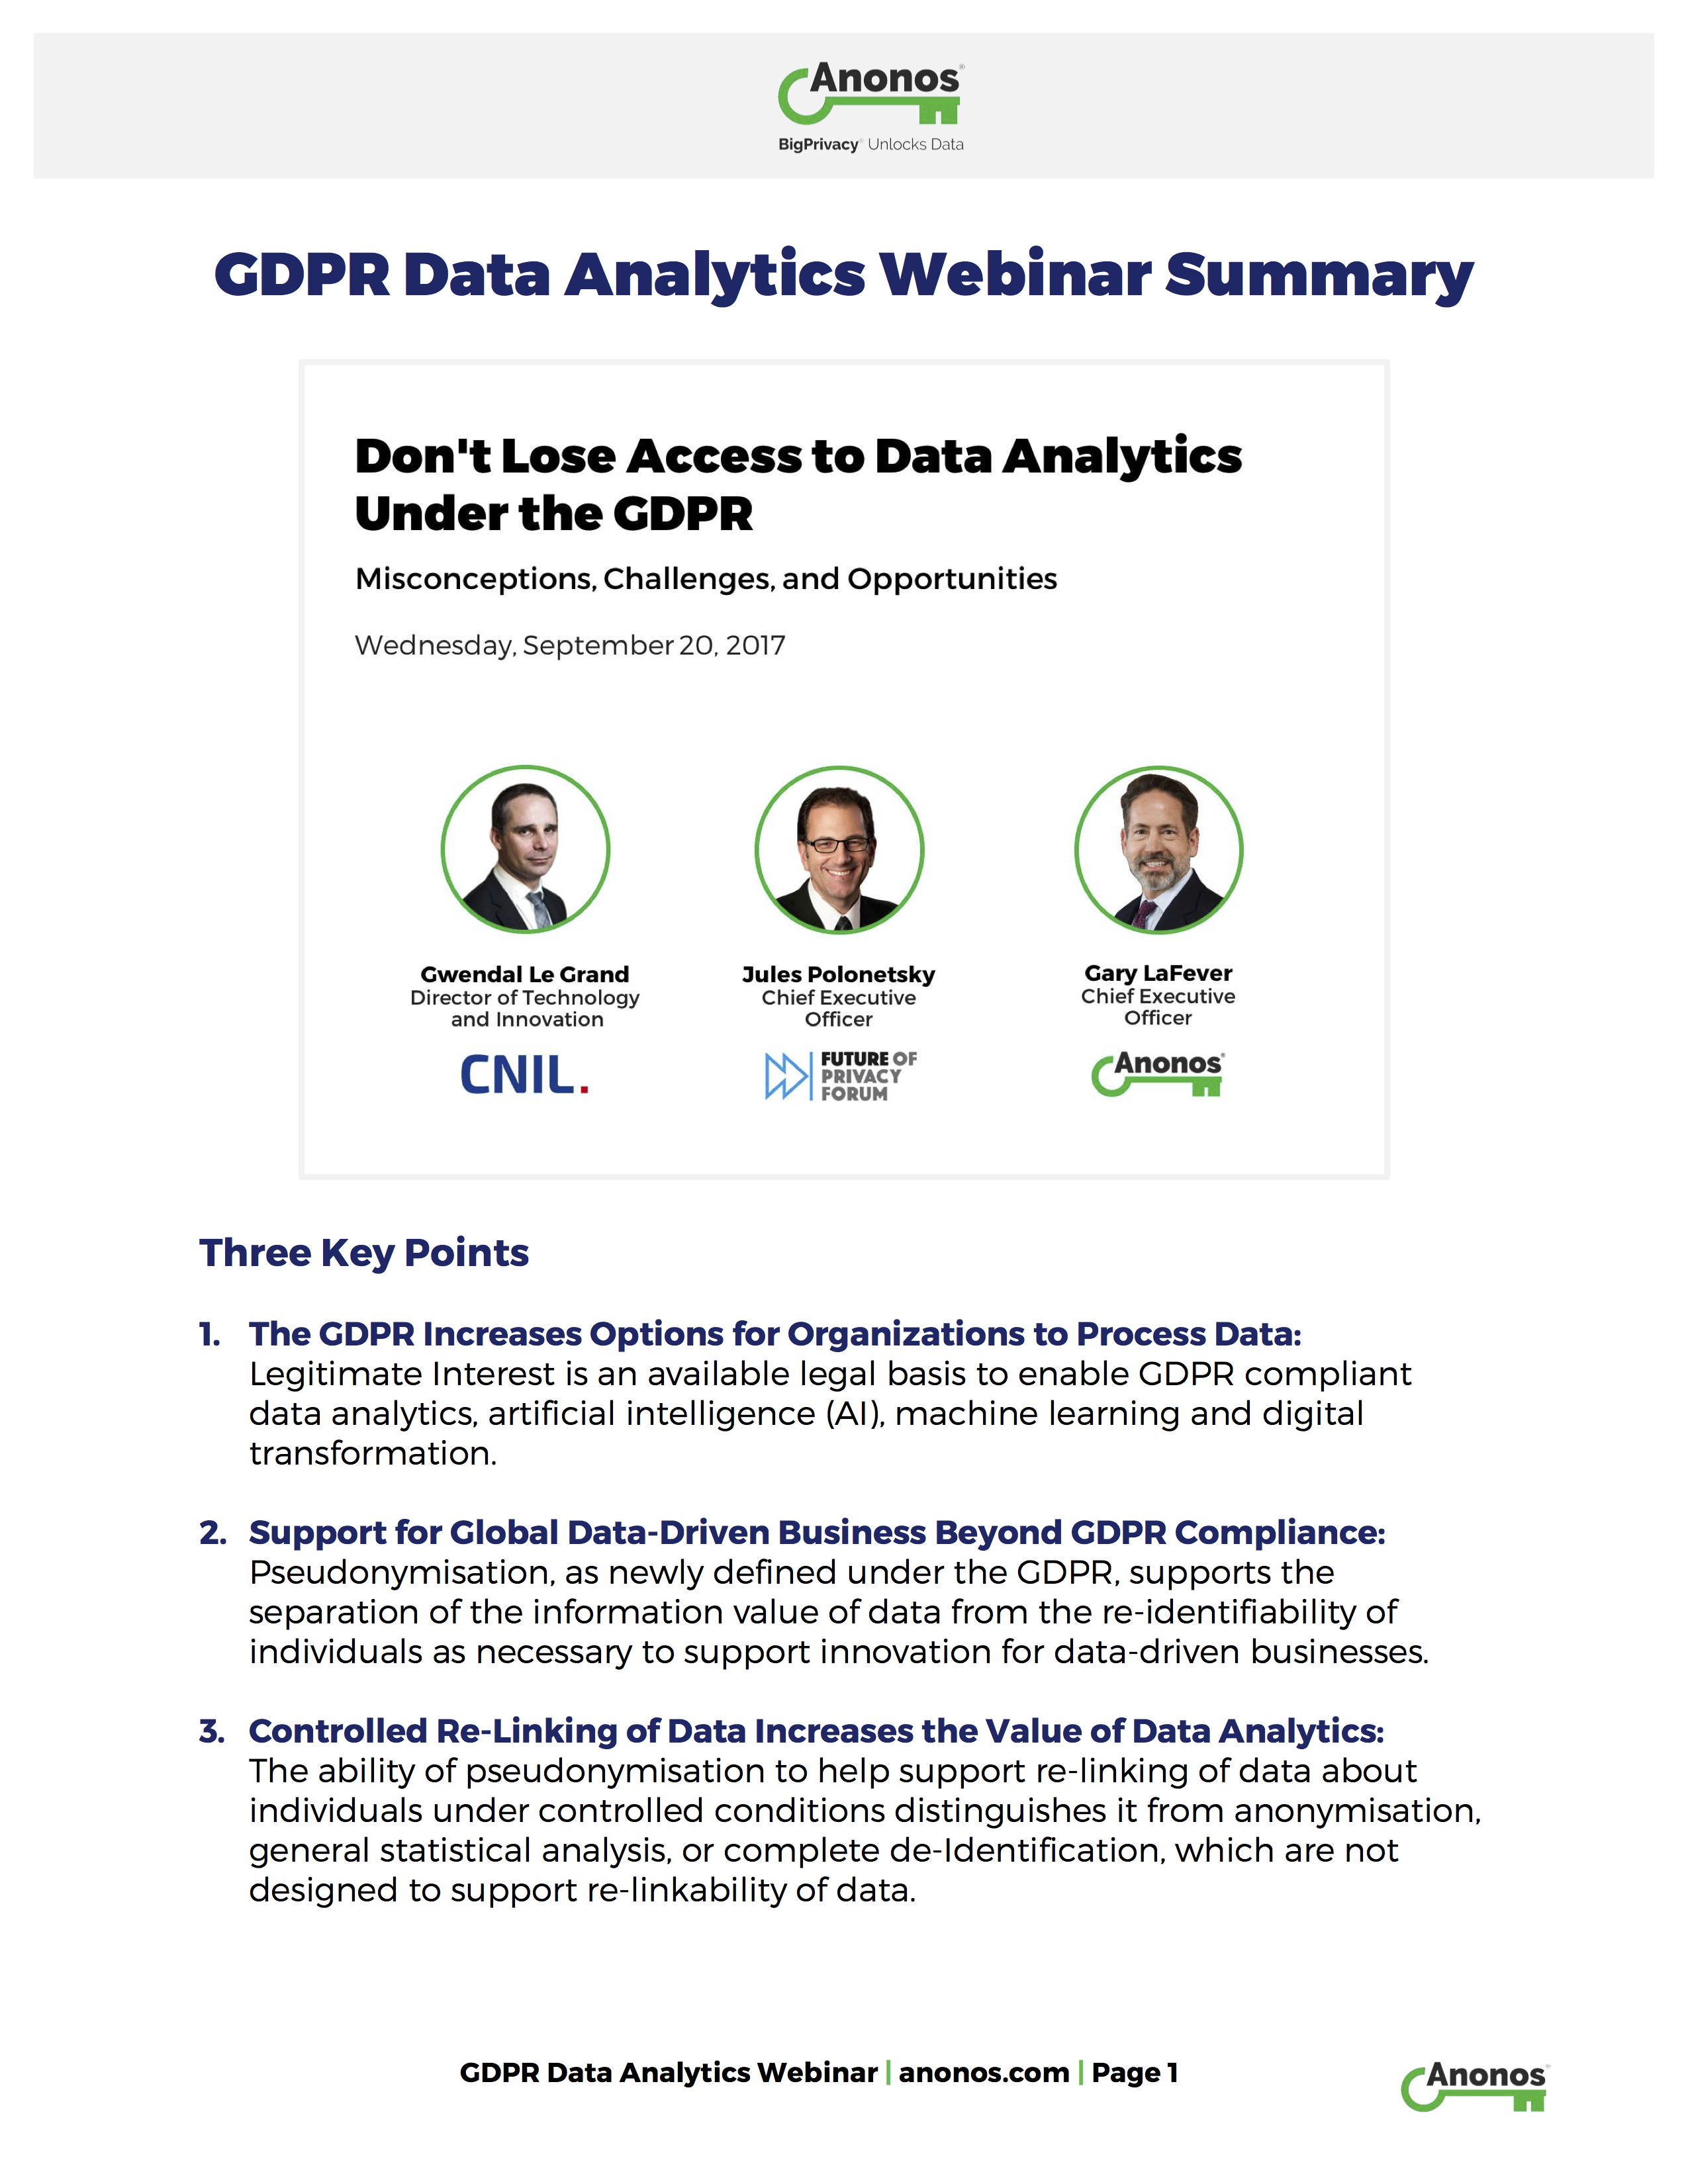 GDPR_Data_Analytics_Webinar Summary_Anonos.png